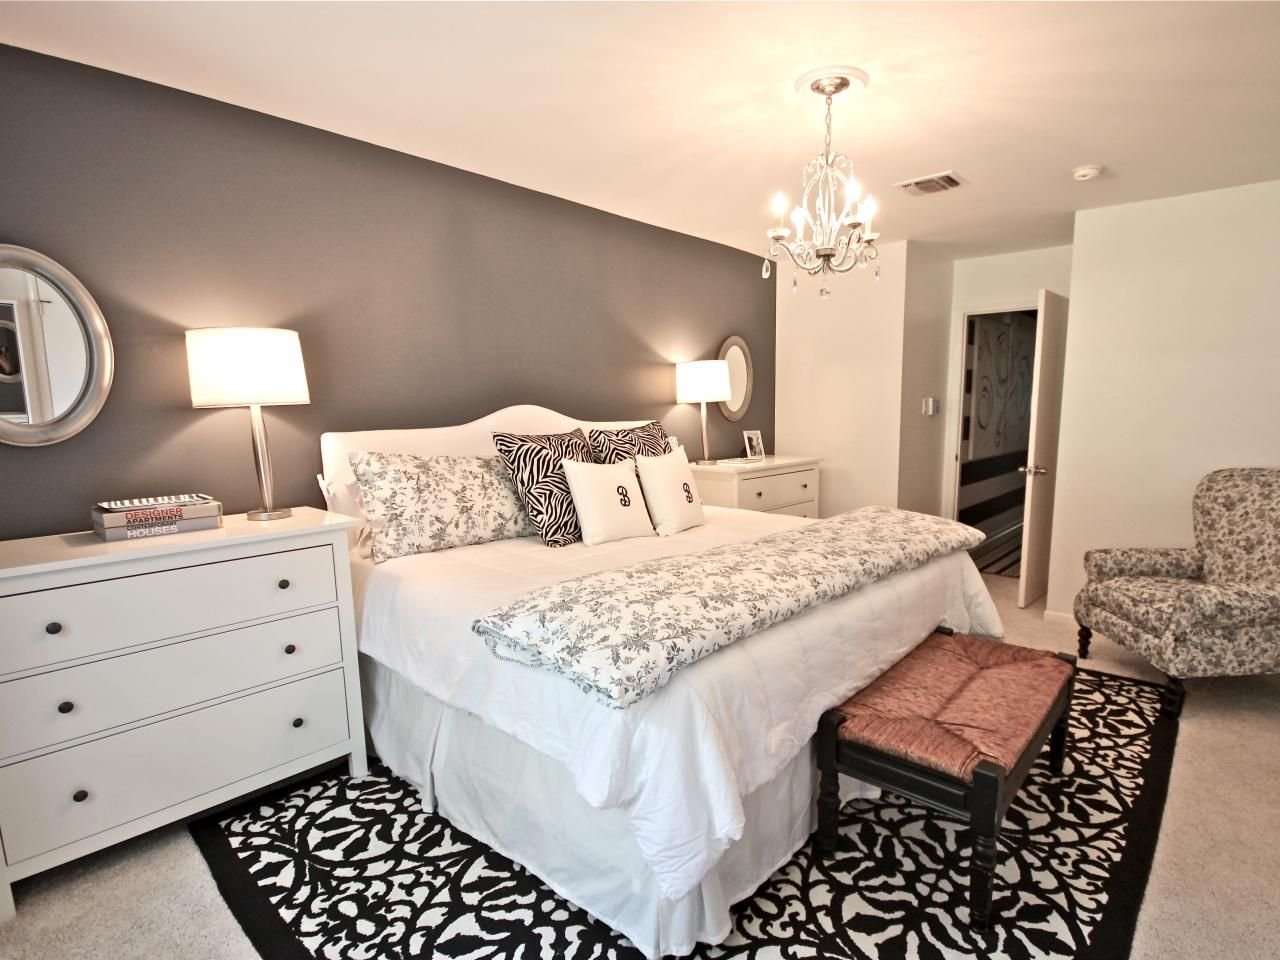 designing bedroom ideas on a budget